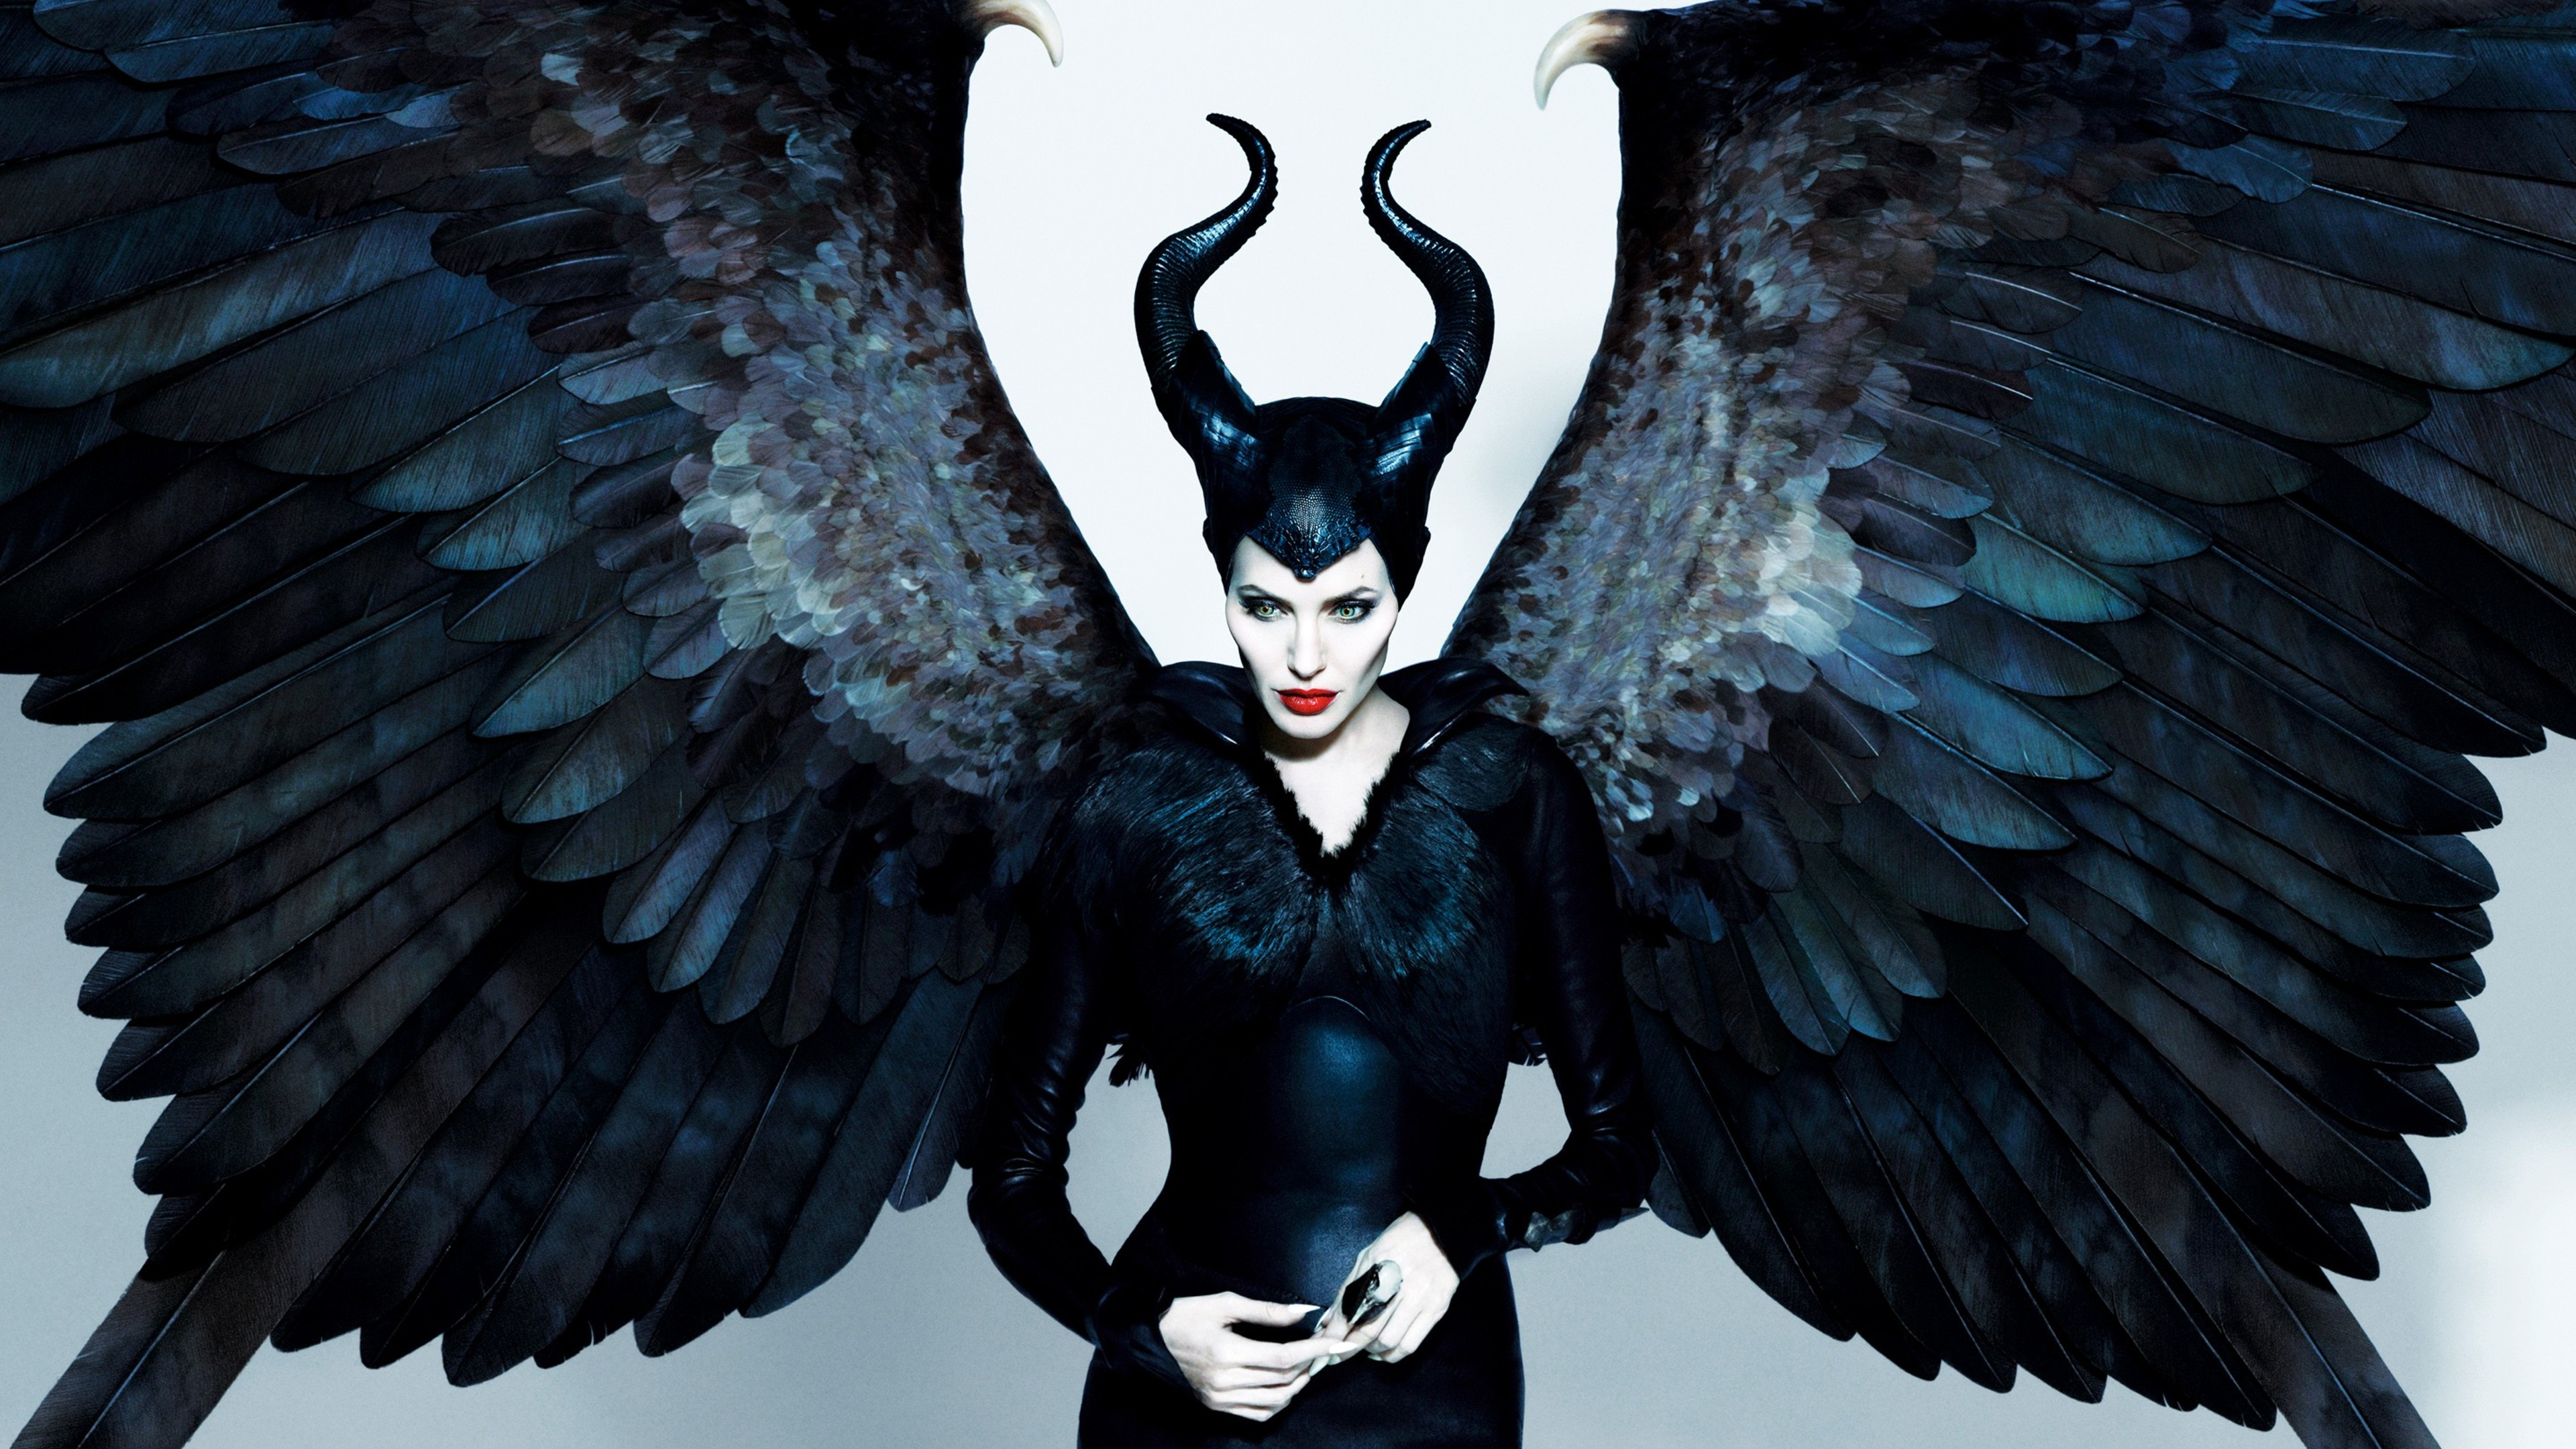 Maleficent Movie 2014 Hd Ipad Iphone Wallpapers: Angelina Jolie In Maleficent Movie HD, HD Movies, 4k